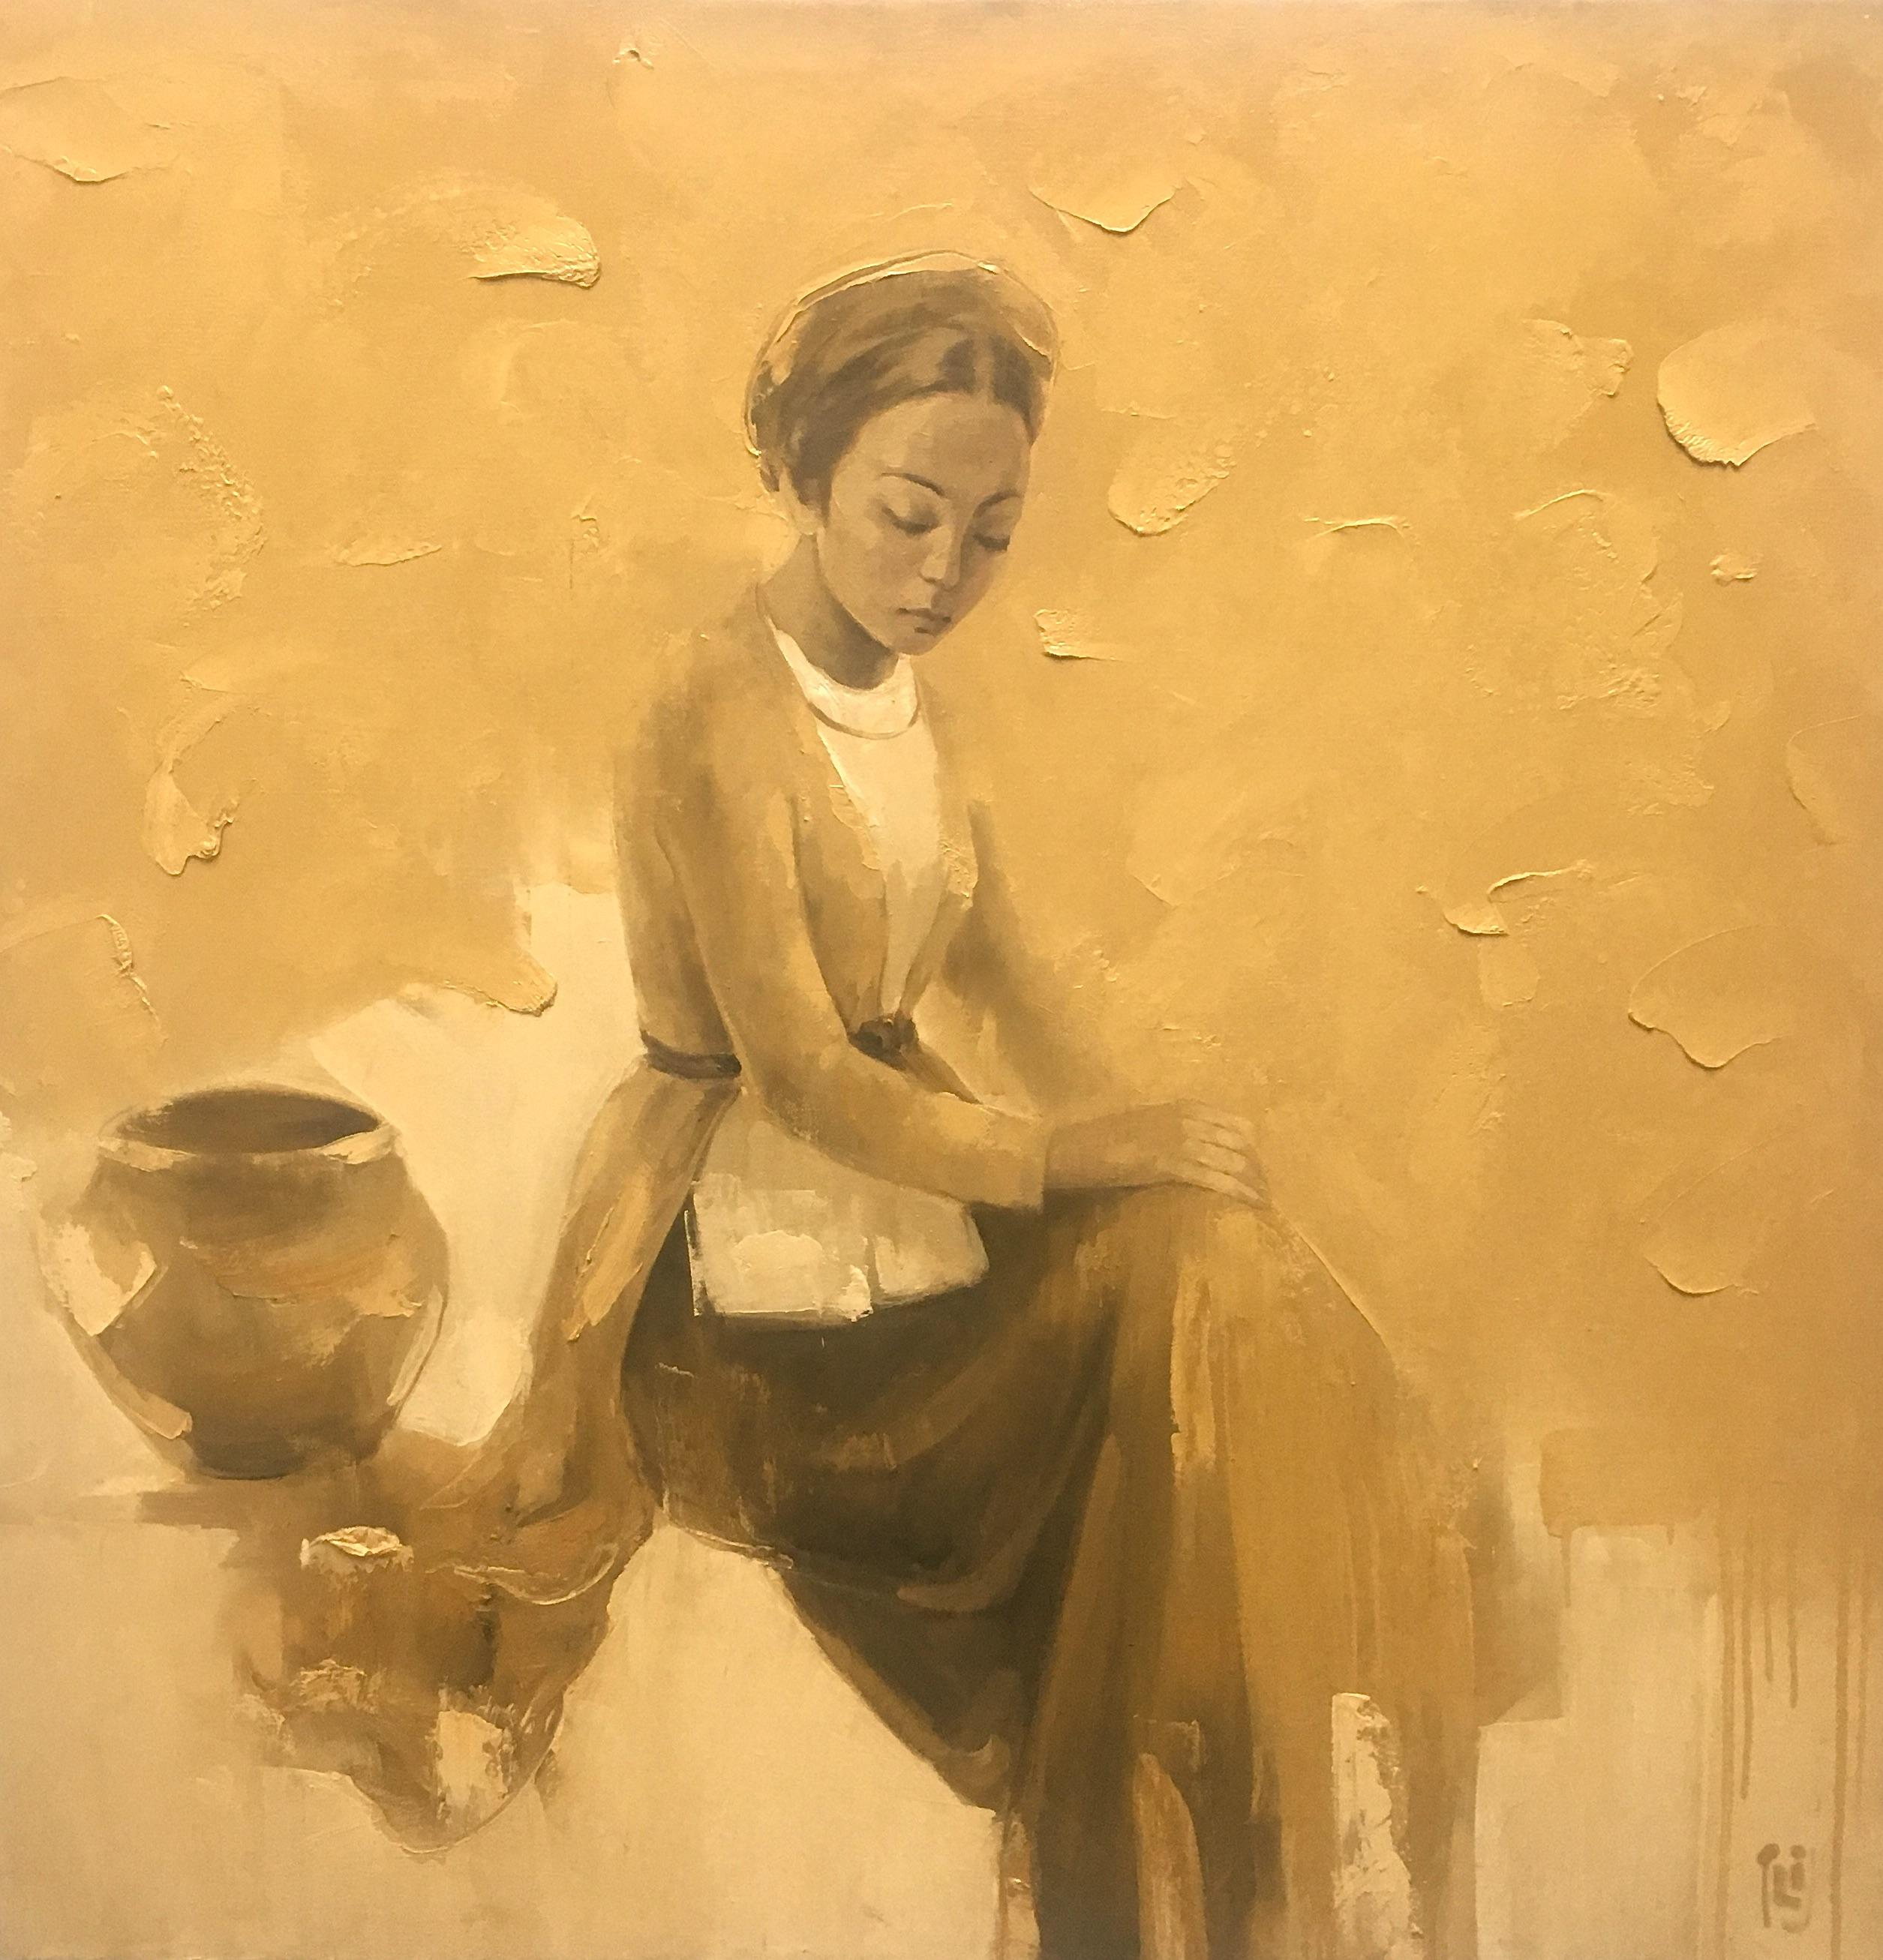 Lady - 120x120 cm - Oil on canvas - Phuong Quoc Tri - Luxembourg Art